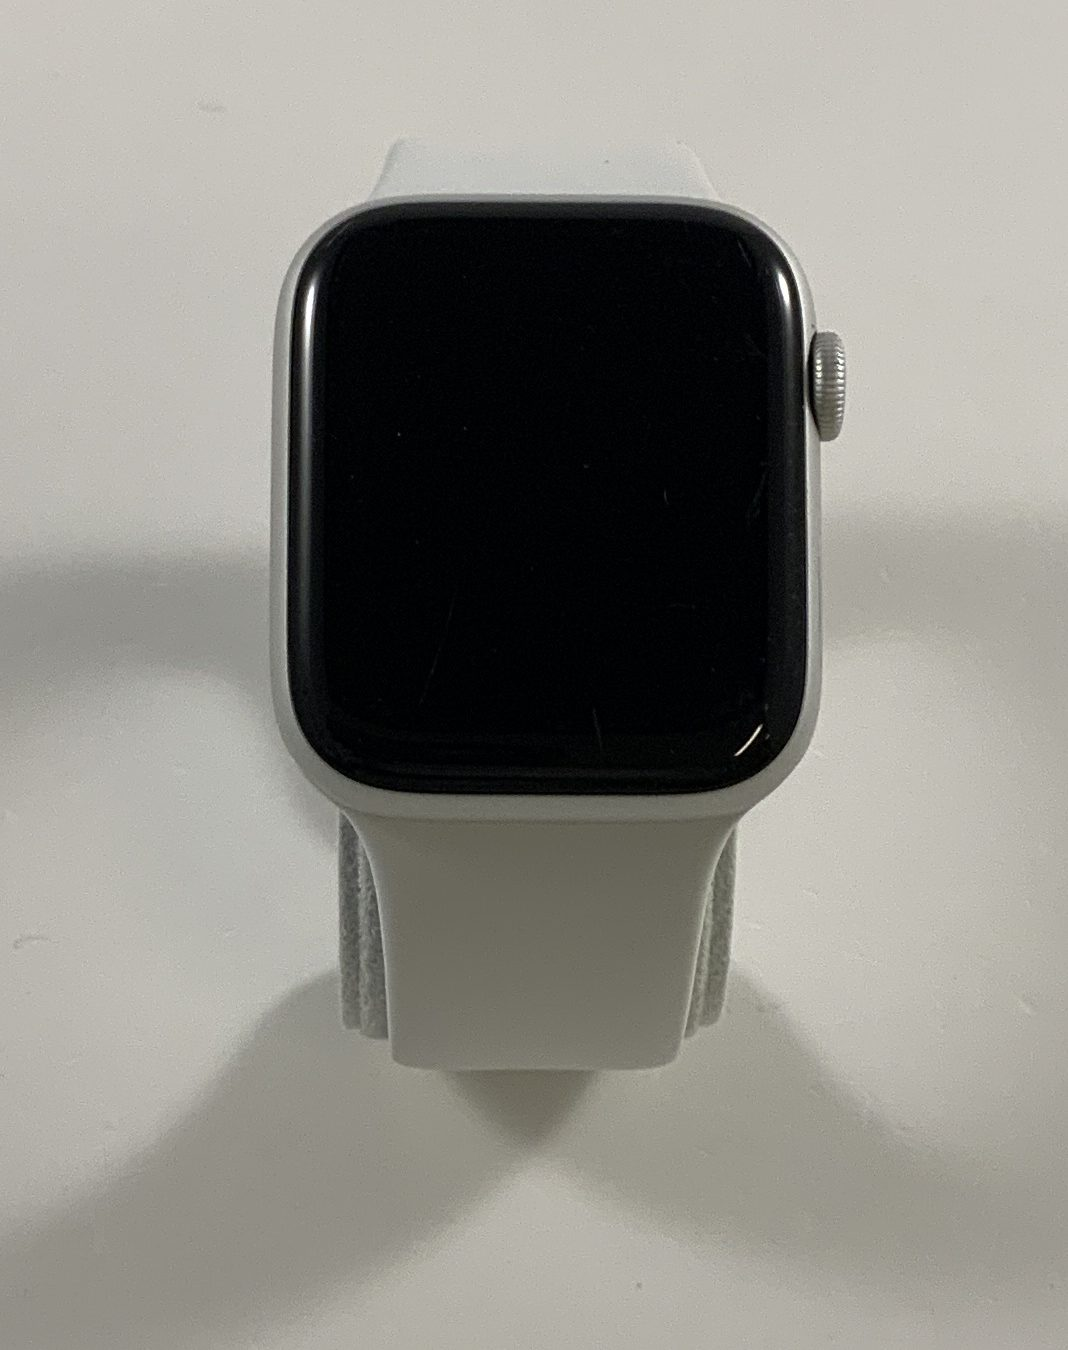 Watch Series 5 Aluminum (44mm), Silver, image 1